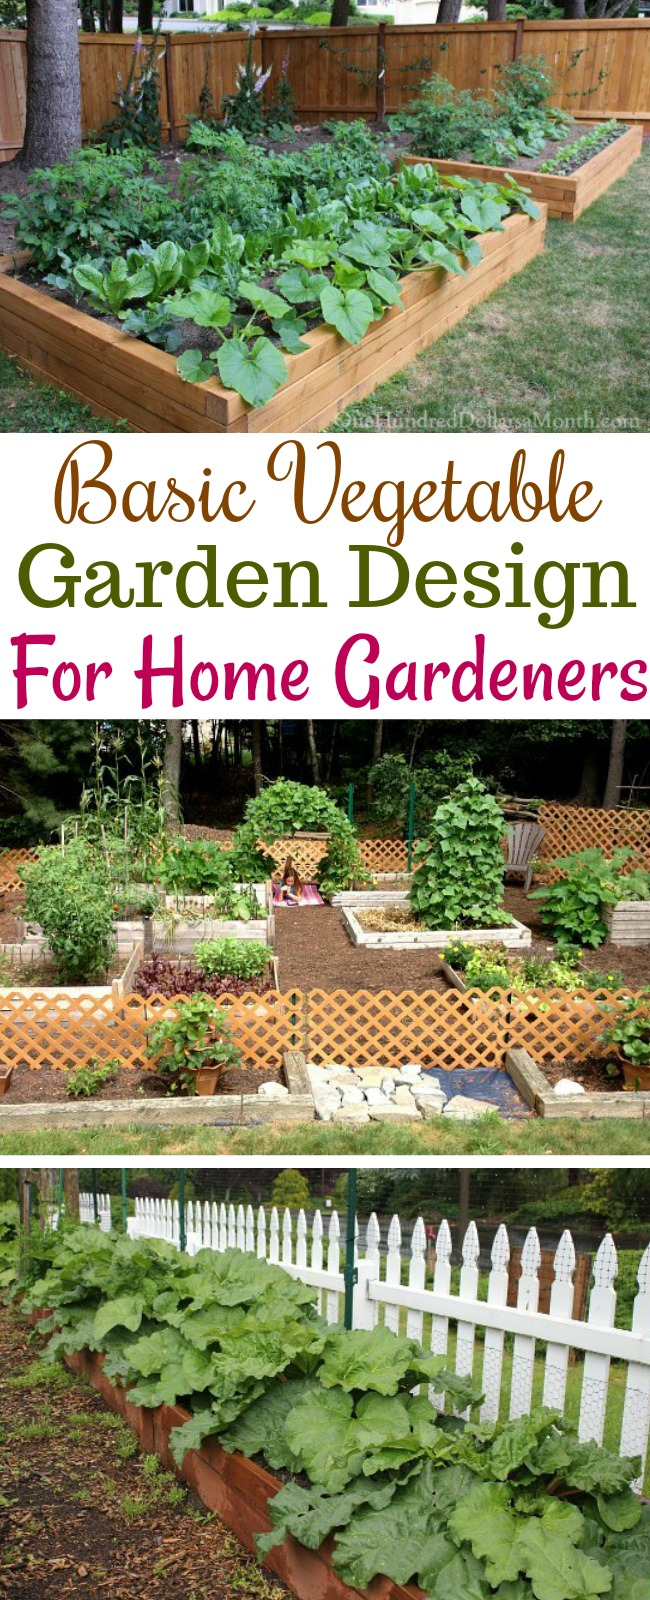 Tips on Basic Garden Design